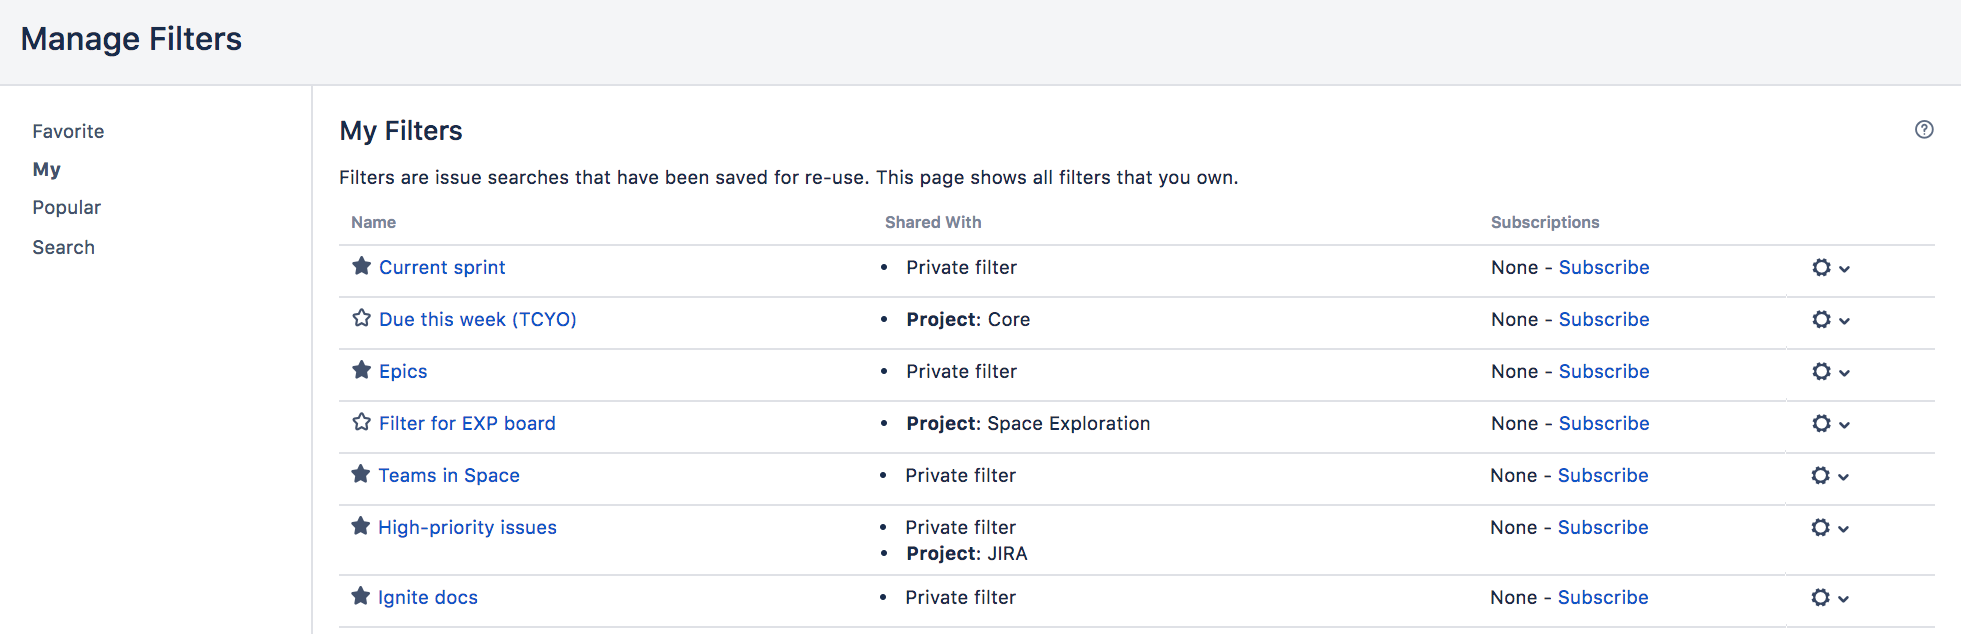 Manage filters page, with a list of saved filters.